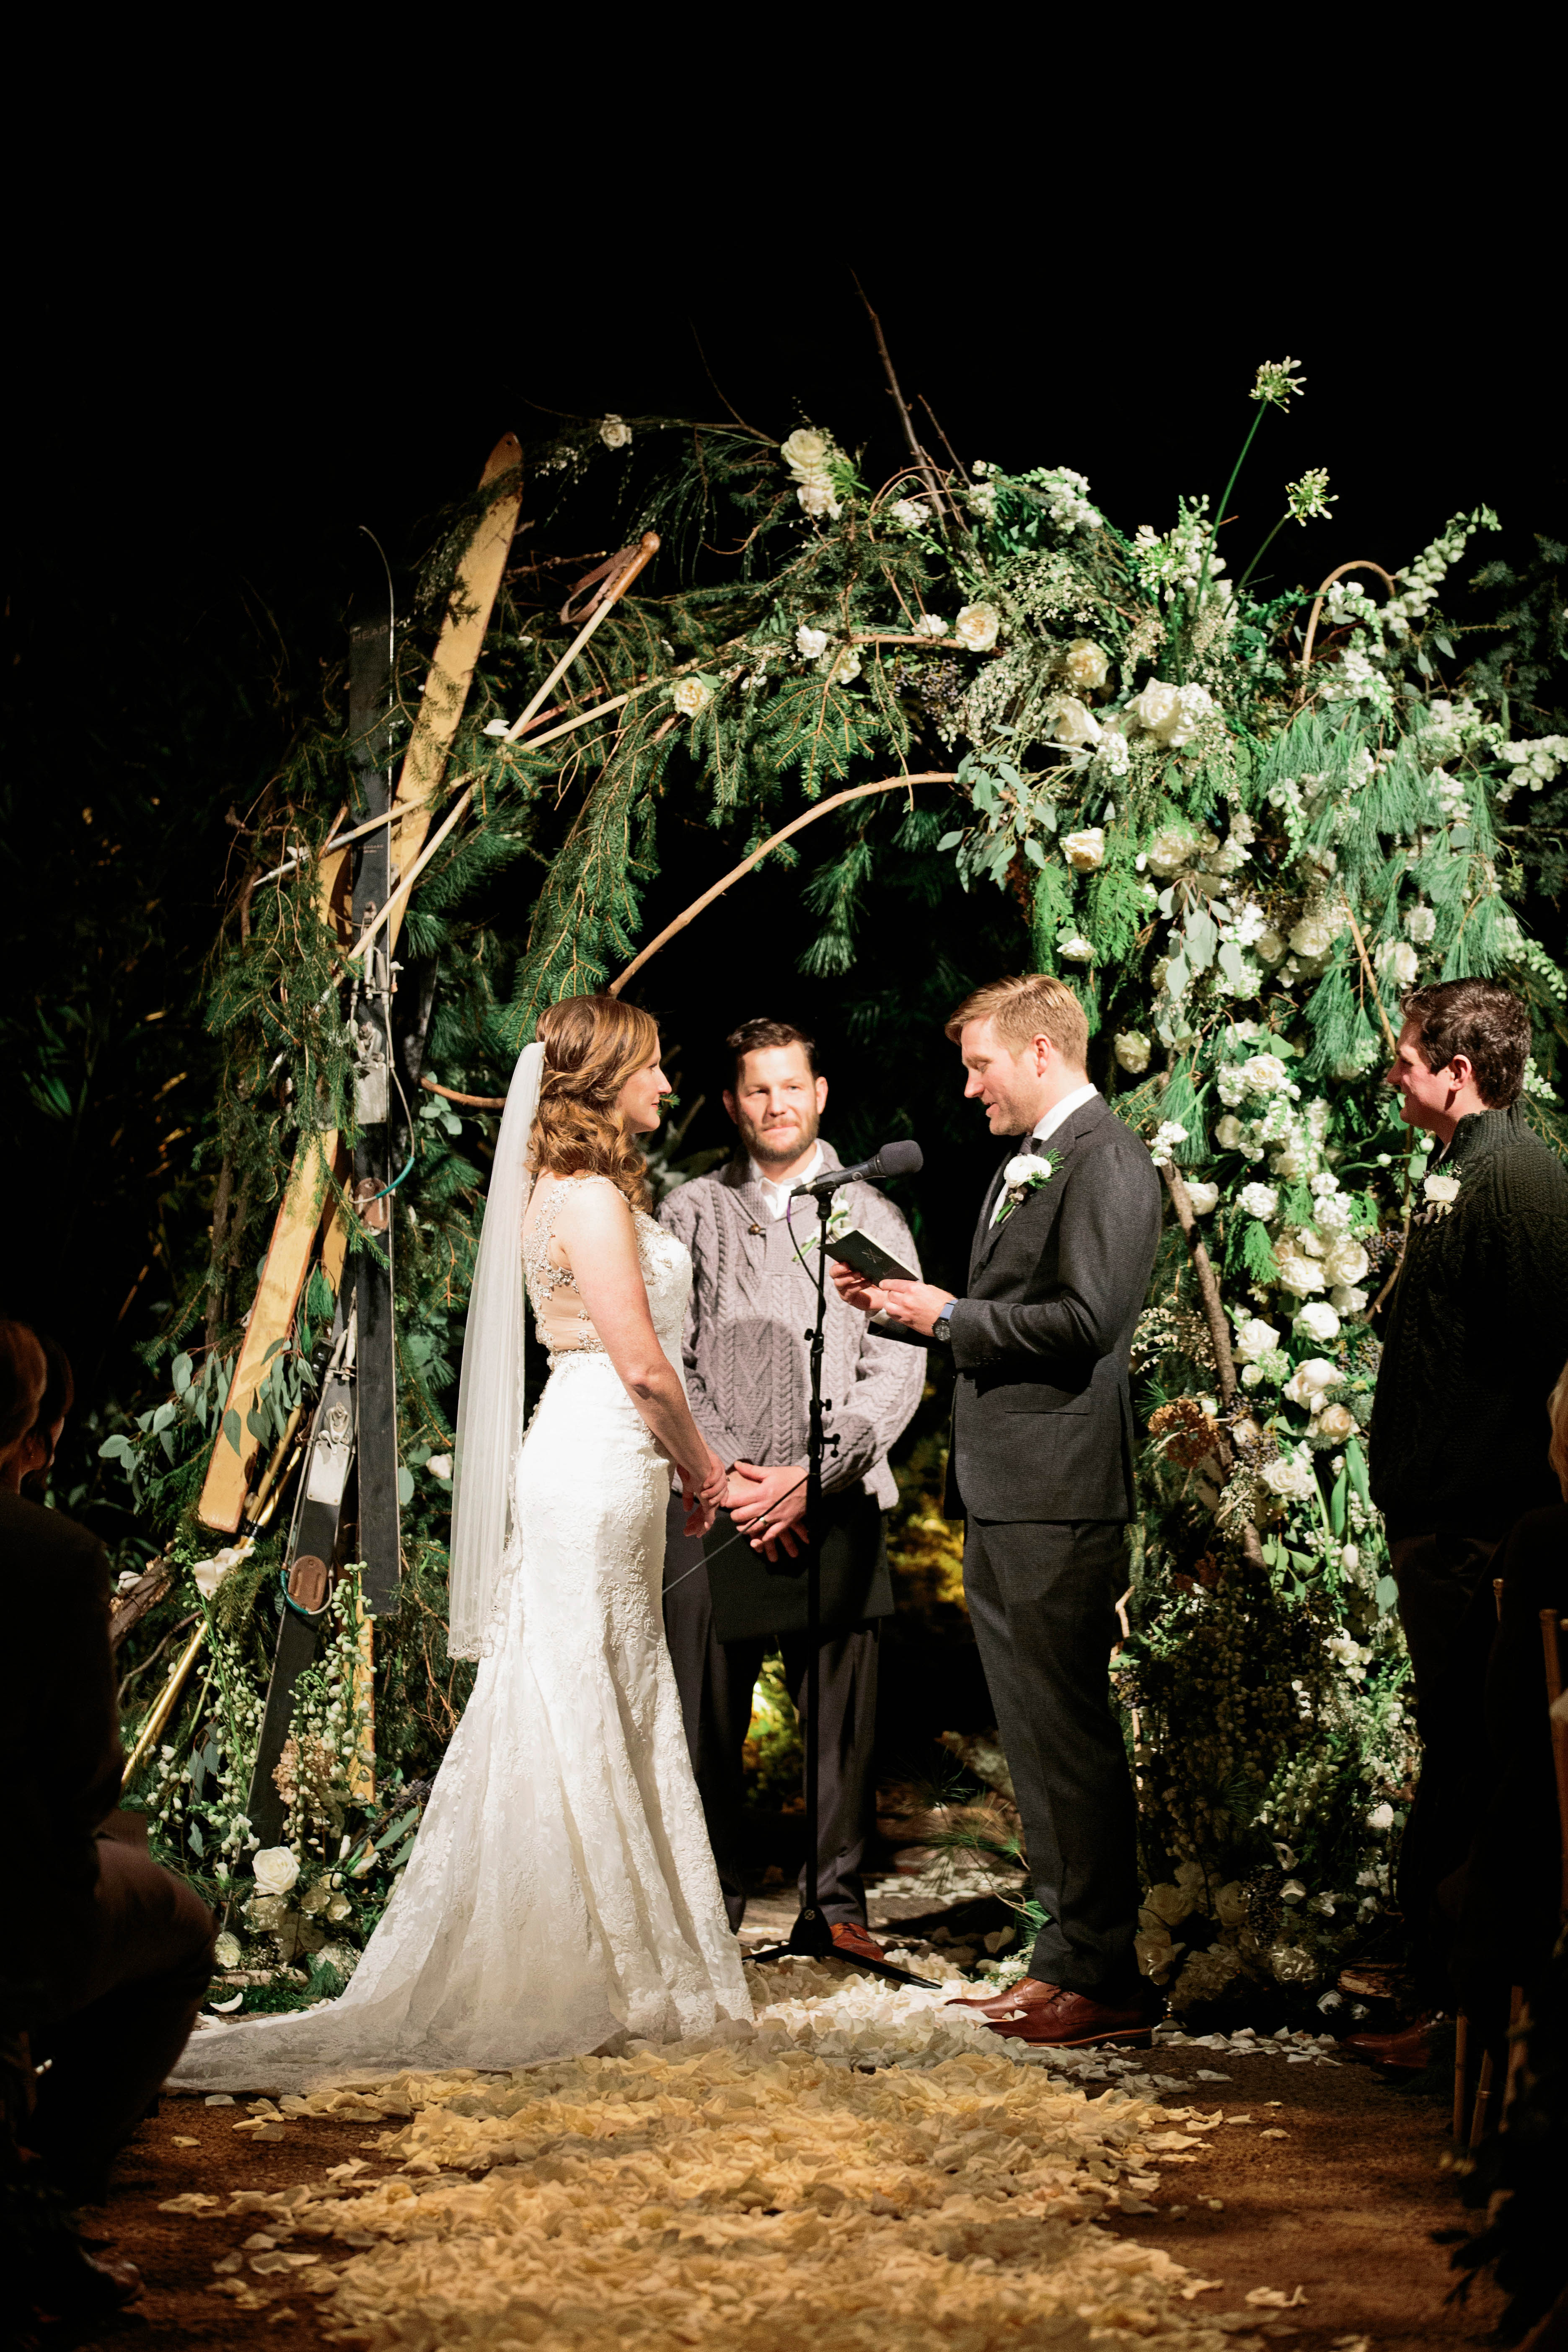 wedding ceremony evening vow reading with candle light